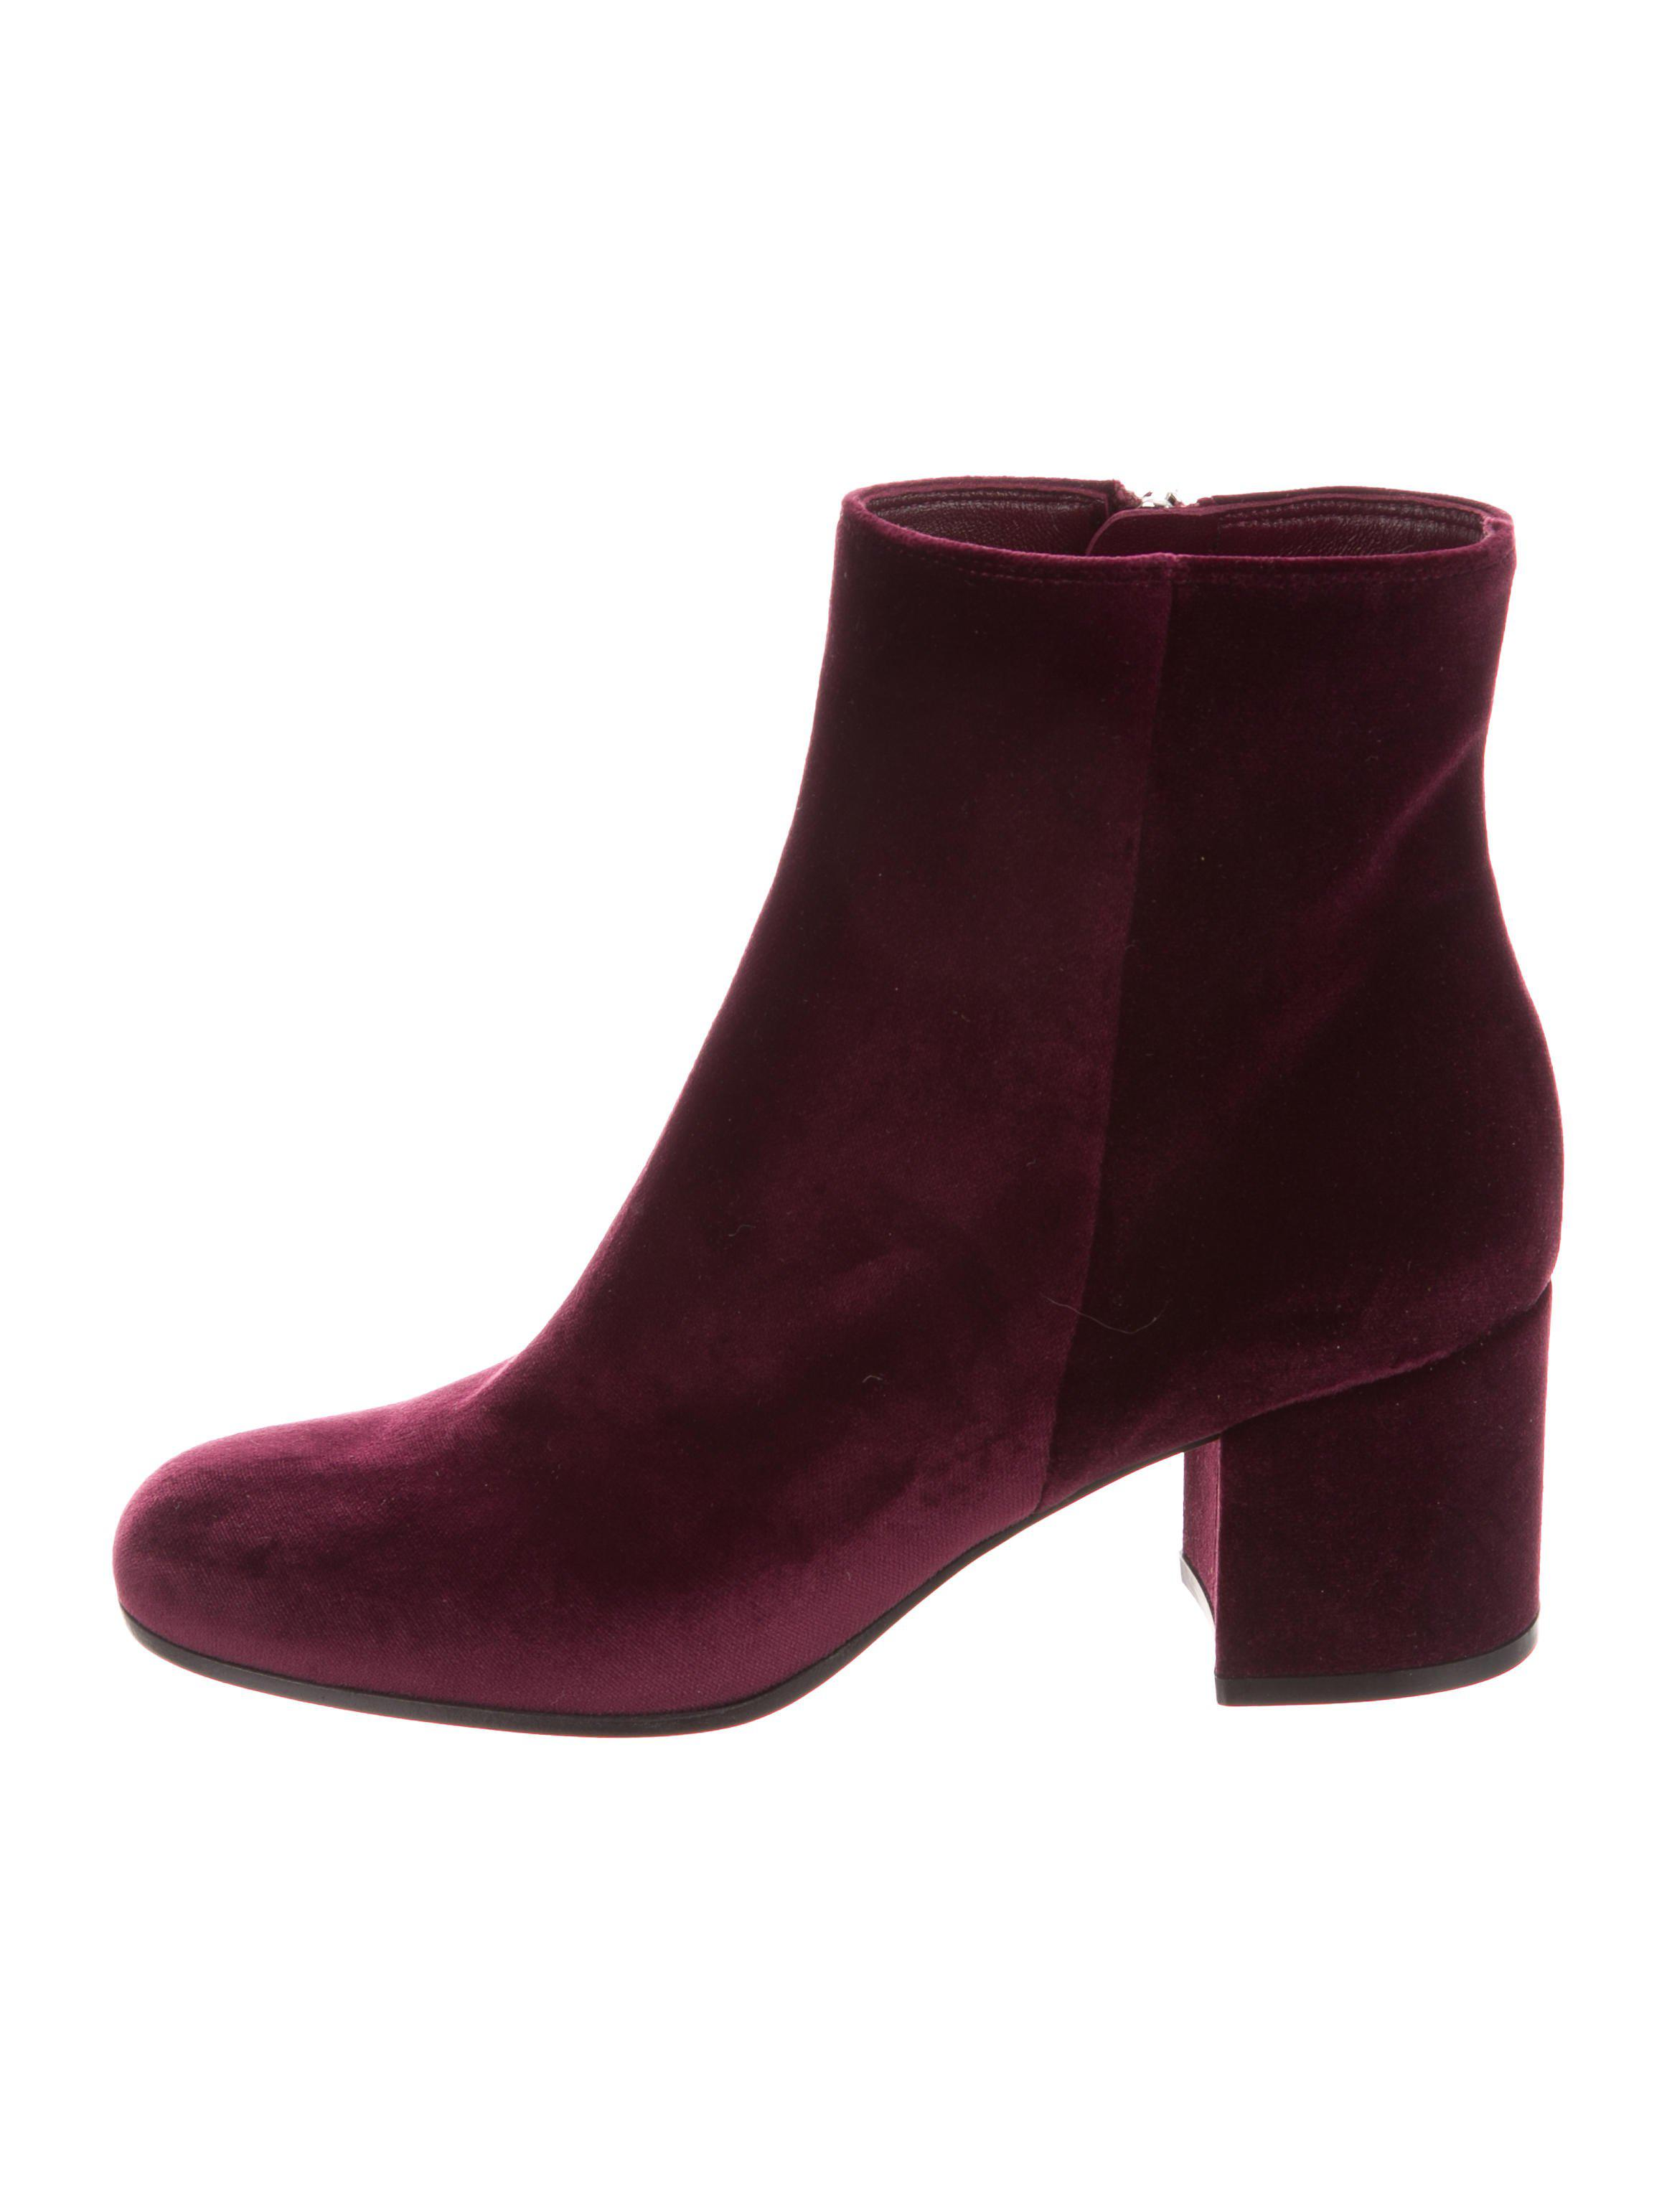 Gianvito Rossi Suede Ankle Boots w/ Tags outlet locations sale online clearance low price fee shipping outlet genuine wEgyQlLmn